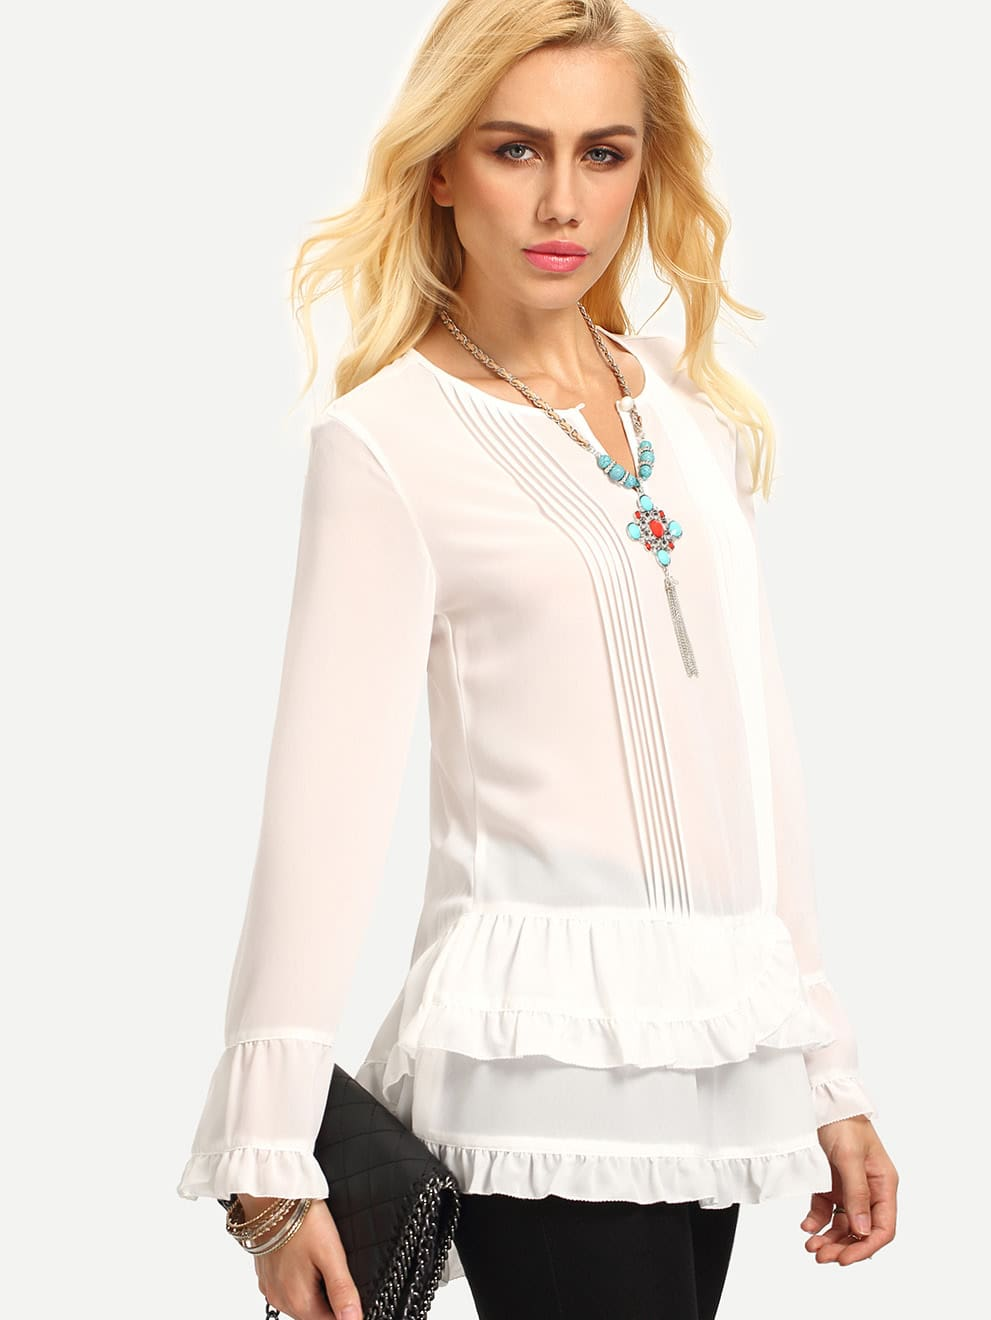 More Details Finley Jenna Long-Sleeve Button-Front Tiered Ruffle Satin Blouse, Plus Size Details Finley